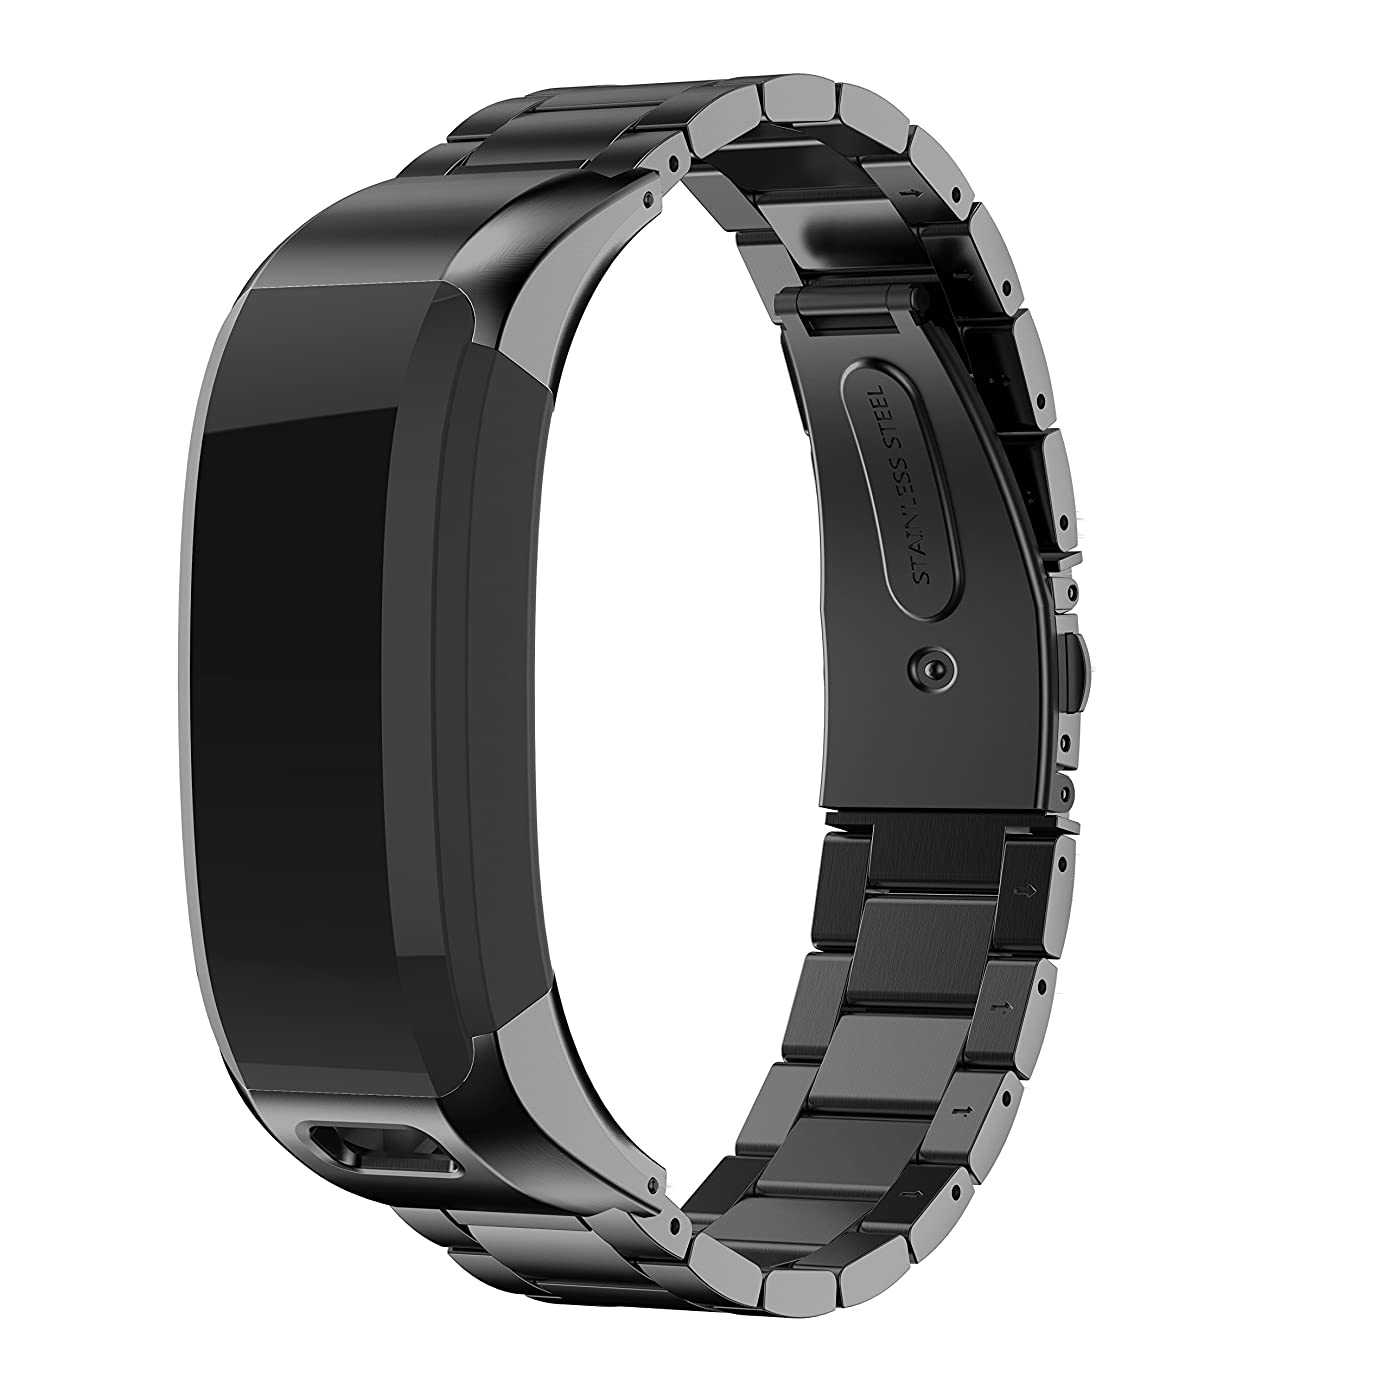 ANCOOL Band Compatible with Smartwatch, Accessory Stainless Steel Replacement Braceklet Unique High Grade Watch Decor Band Metal Straps for Garmin Vivosmart HR(NOT for Vivosmart HR+) -Black